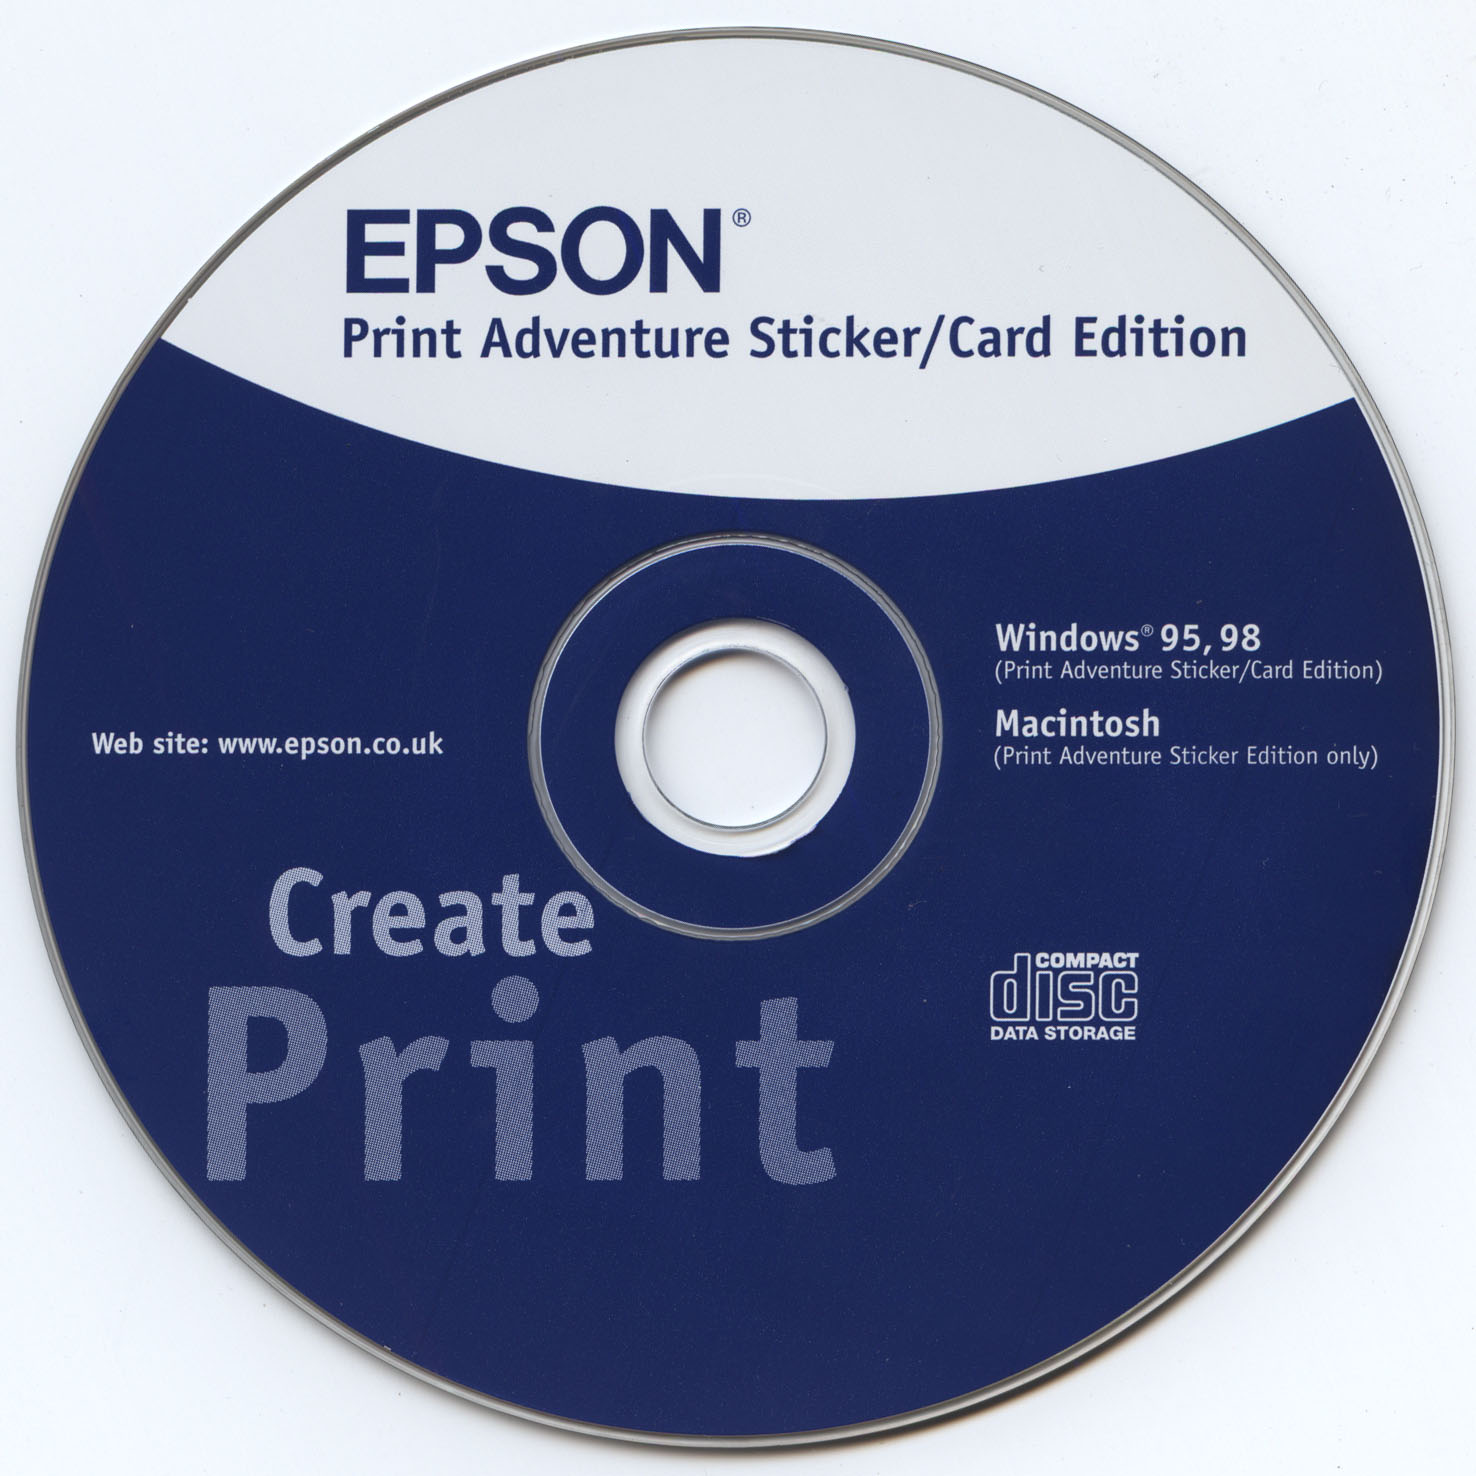 Epson Print Adventure Sticker/Card Edition (Windows/Macintosh)